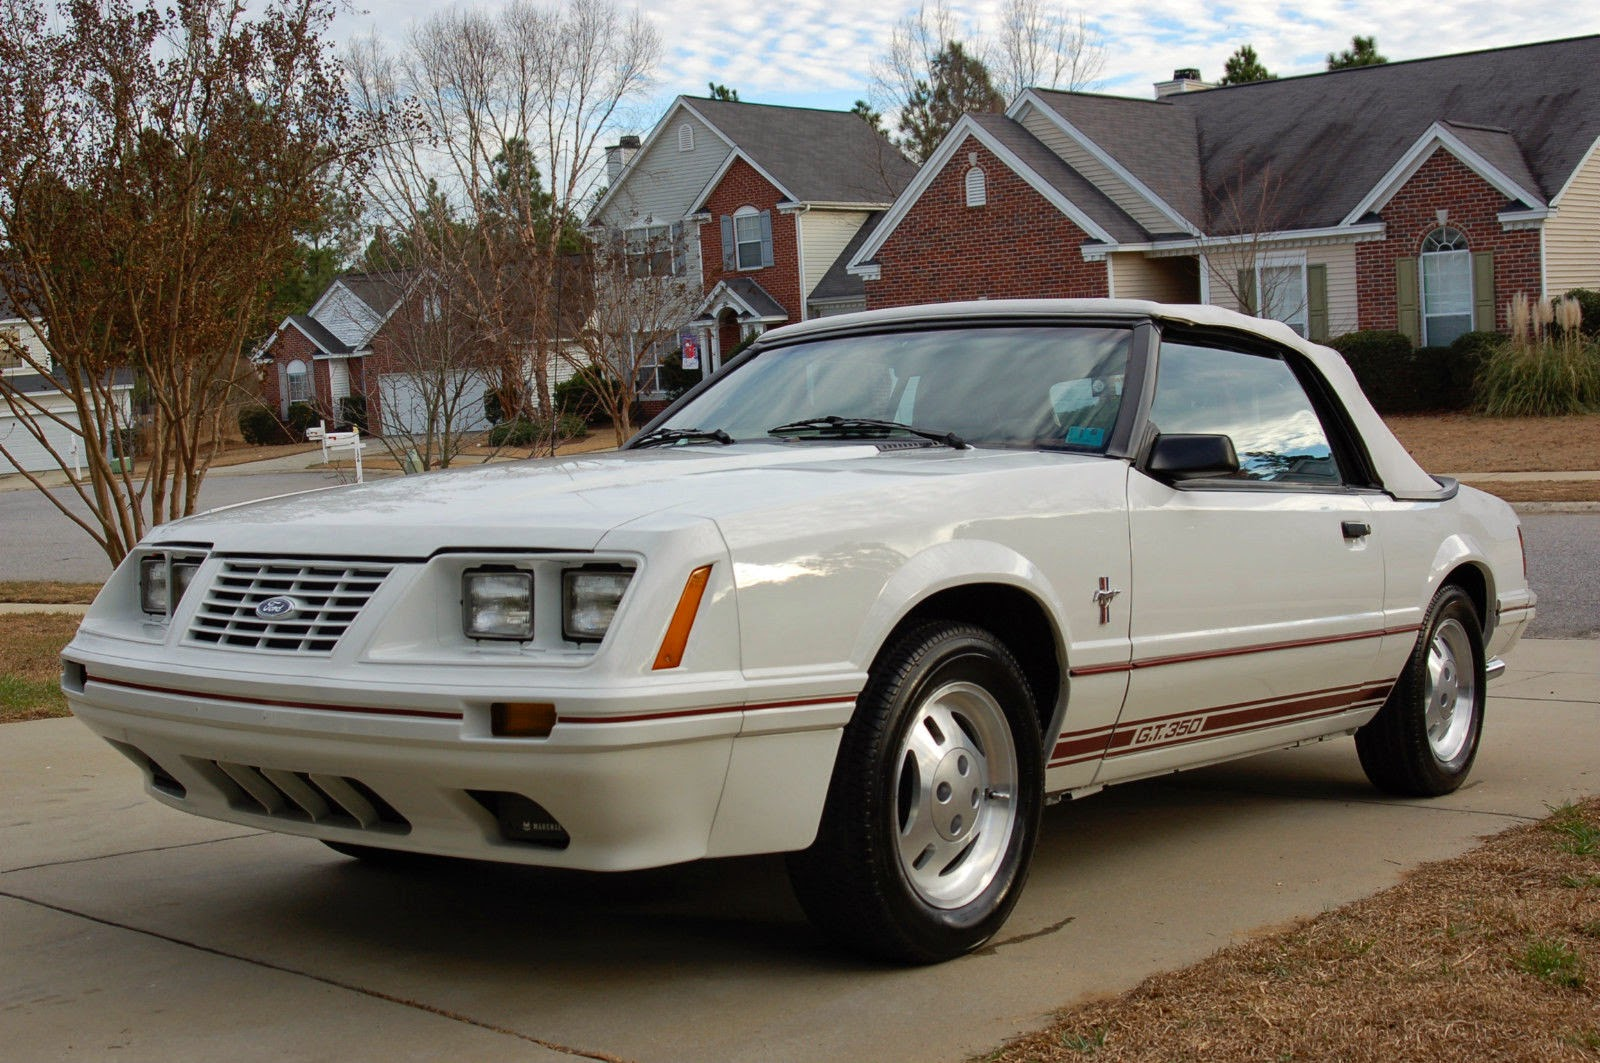 1984 ford mustang gt 350 20th anniversary 2 door convertible